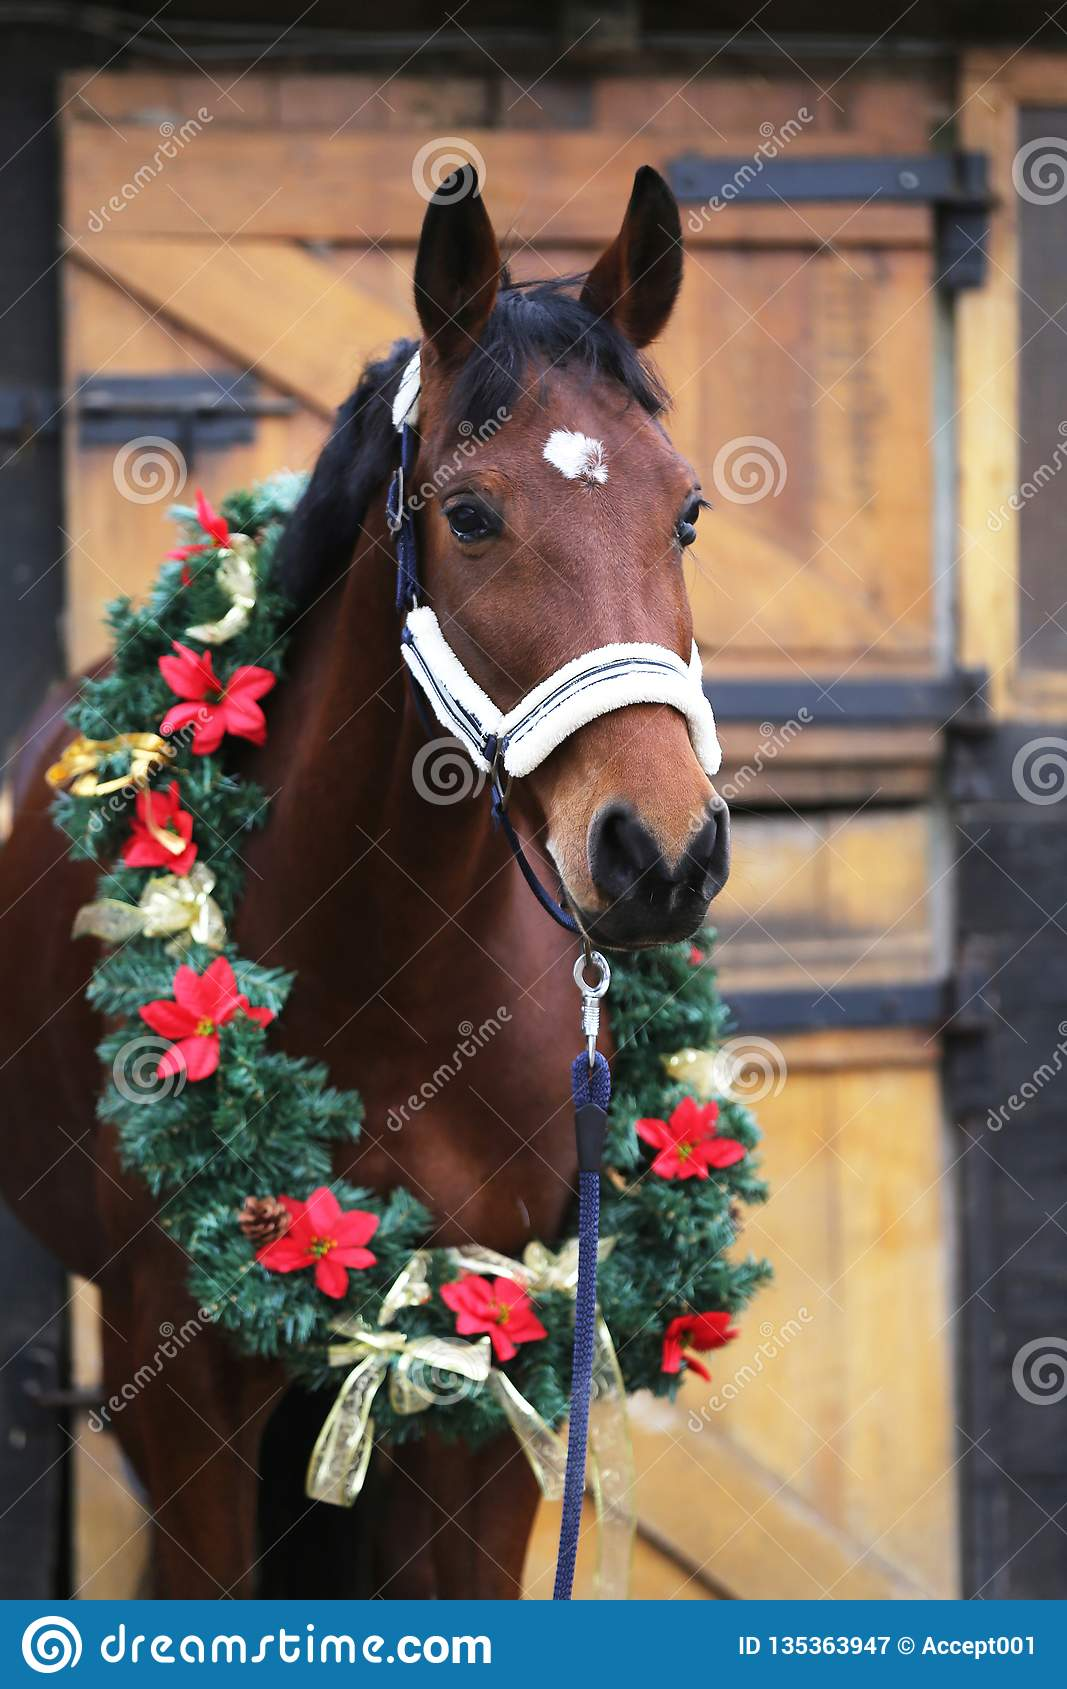 Dreamy Image Of A Saddle Horse Wearing A Beautiful Christmas Wreath At Rural Riding Hall Against Barn Door Stock Image Image Of Fresh Colorful 135363947